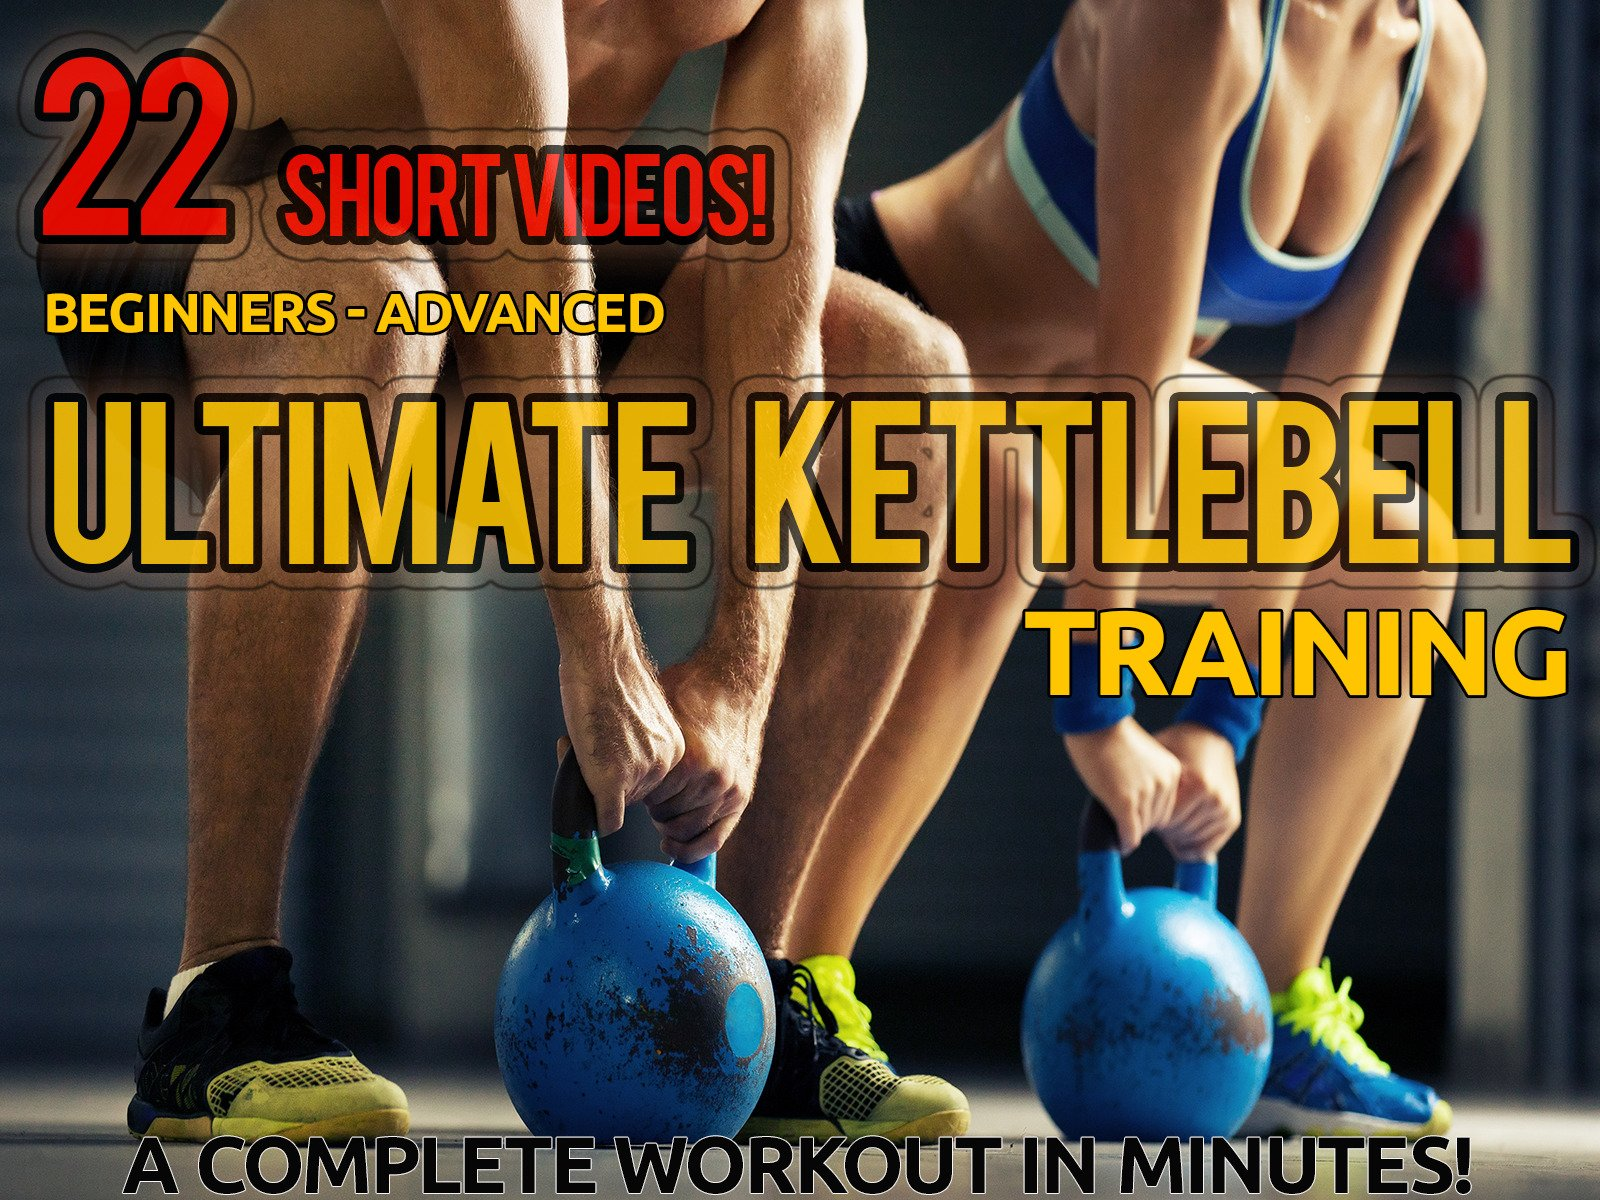 The Ultimate Kettlebell Training - Season 1